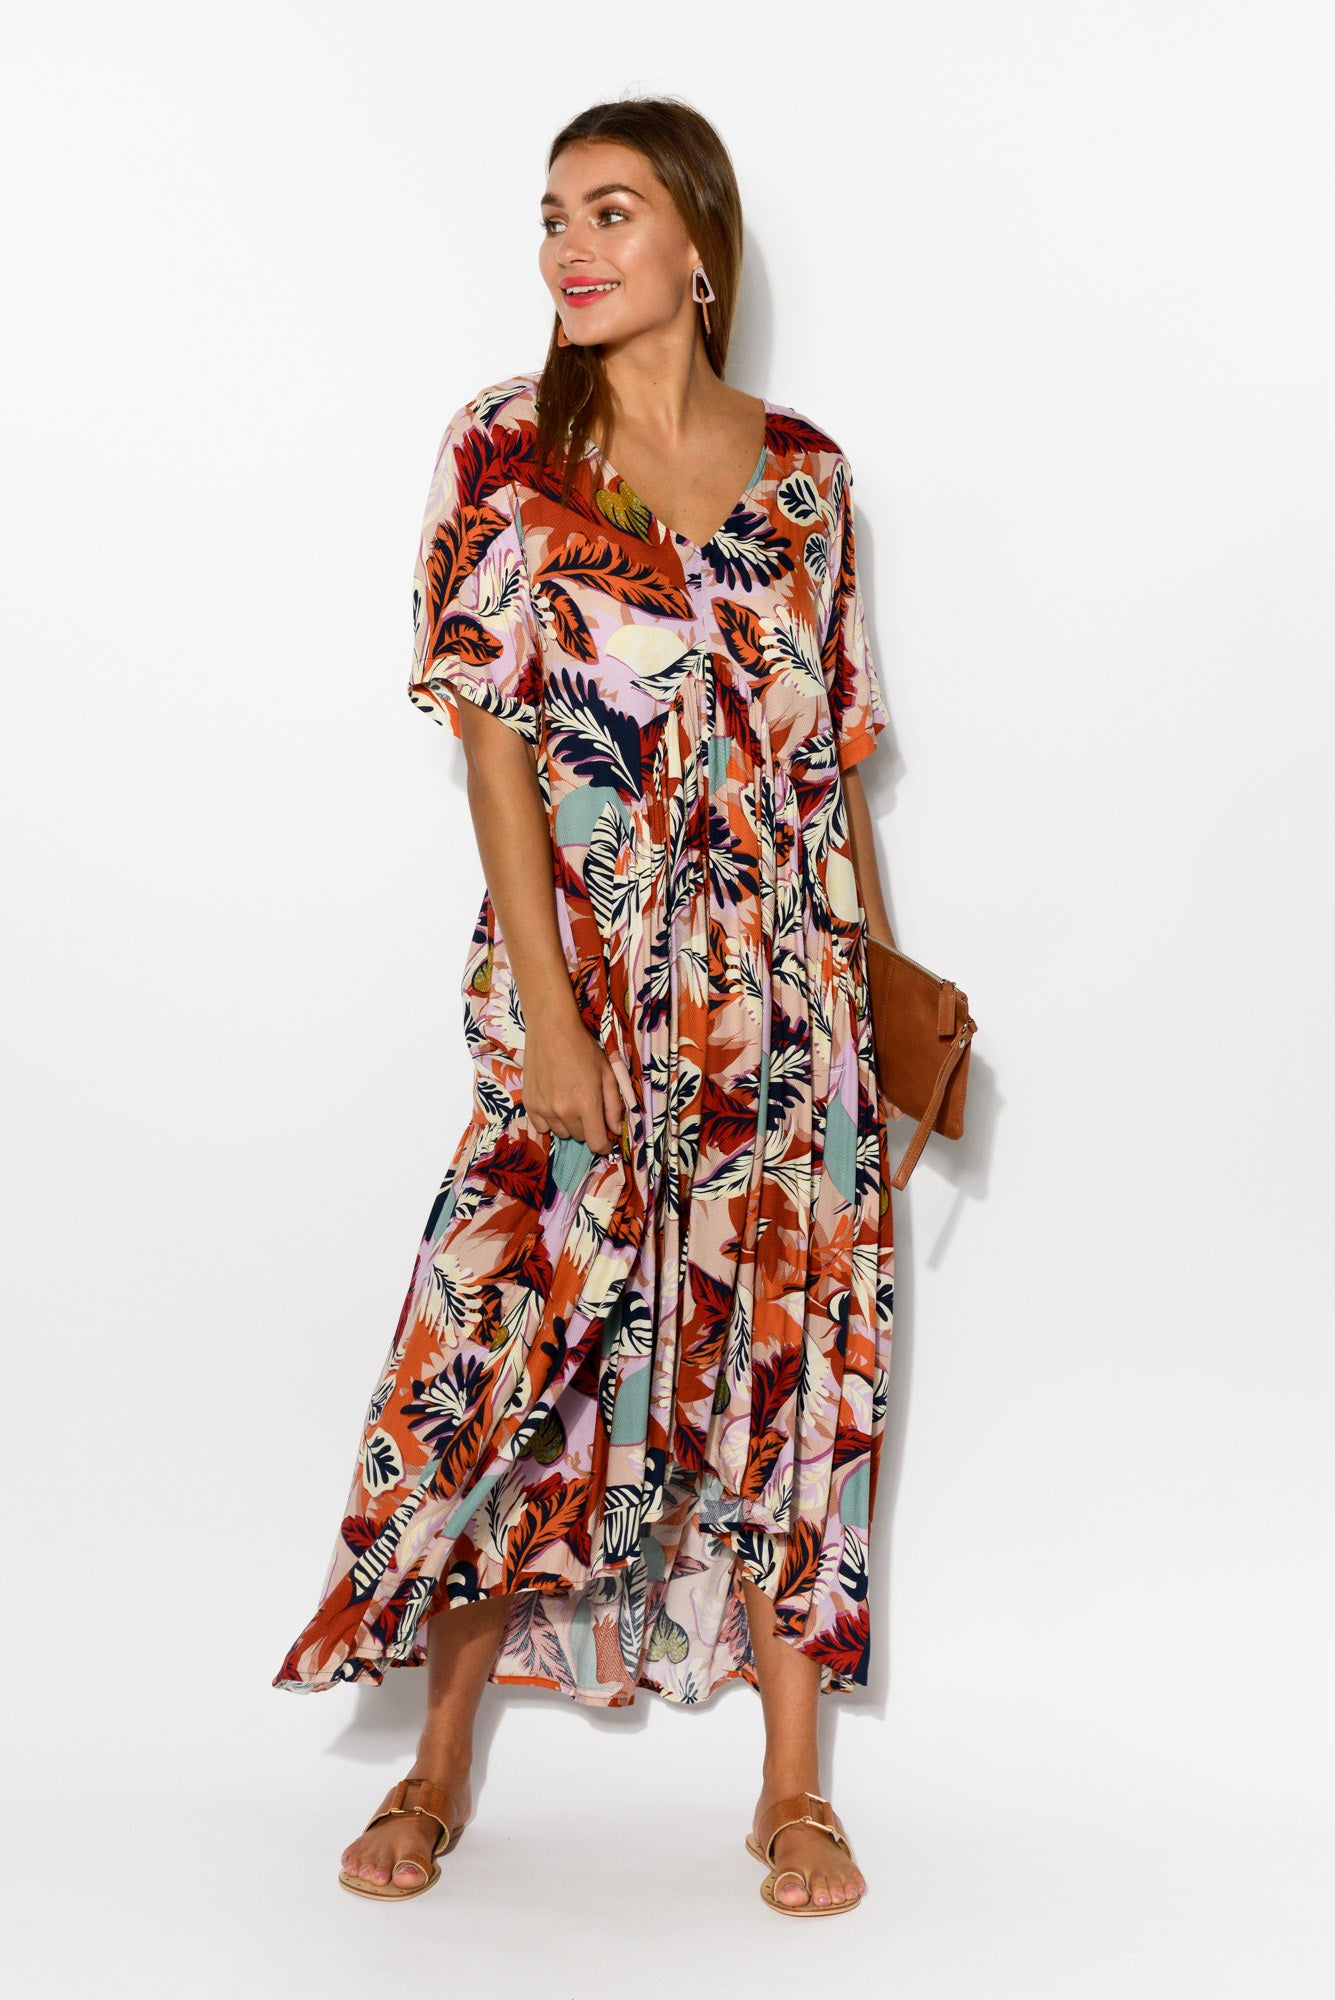 Autumn Leaf Peak Maxi Dress - Blue Bungalow